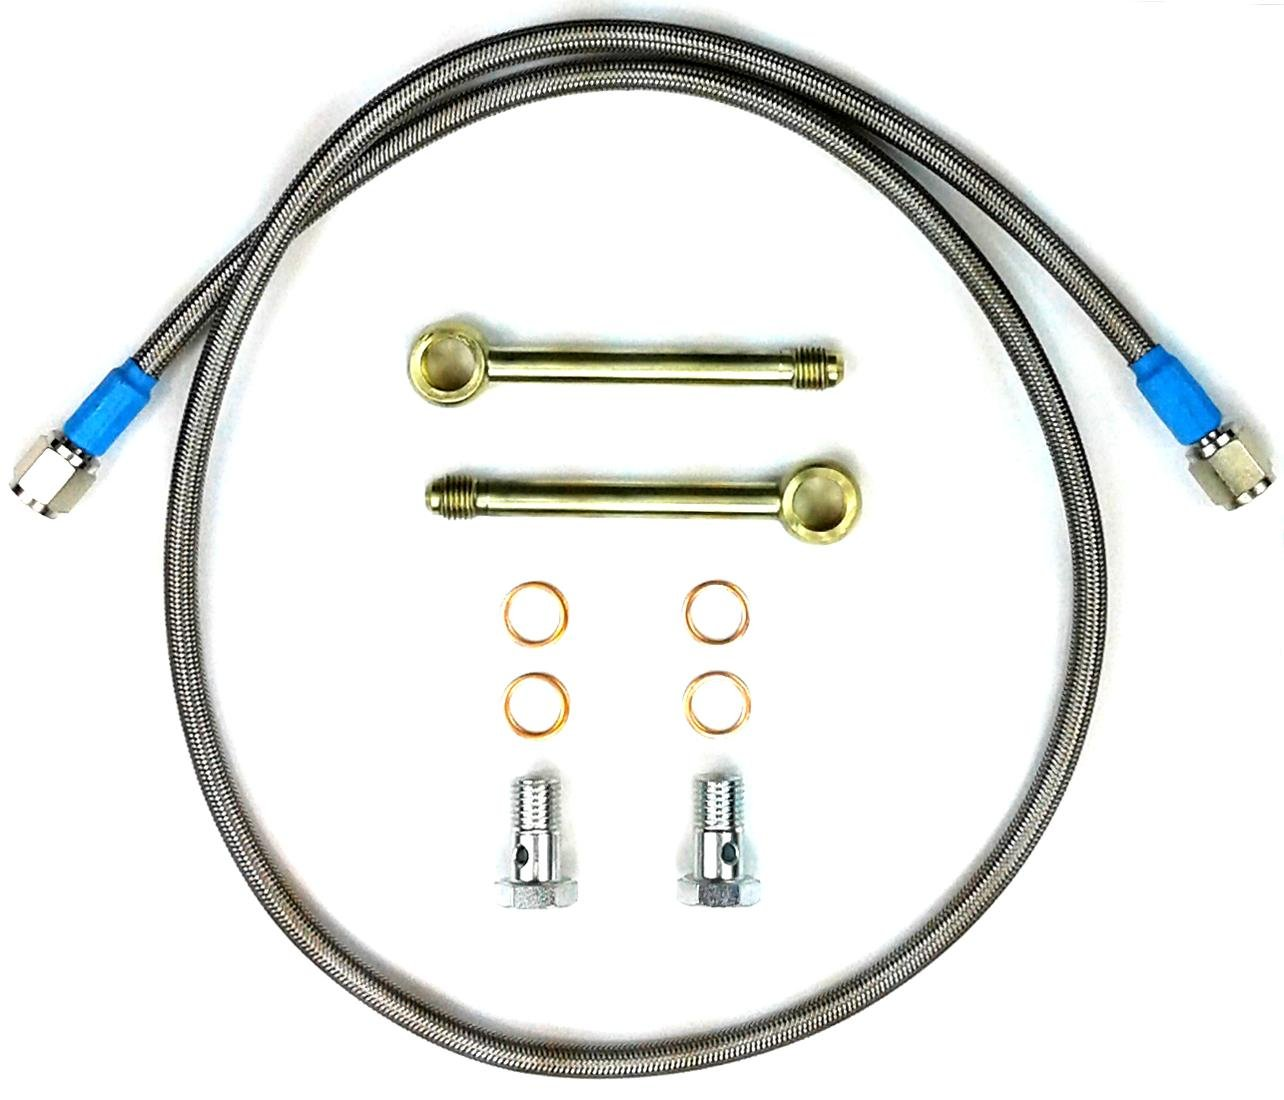 TamerX Fuel Line Crossover Kit 'Injector Saver' for 2003-2010 Ford Powerstroke 6.0L & Navistar VT365